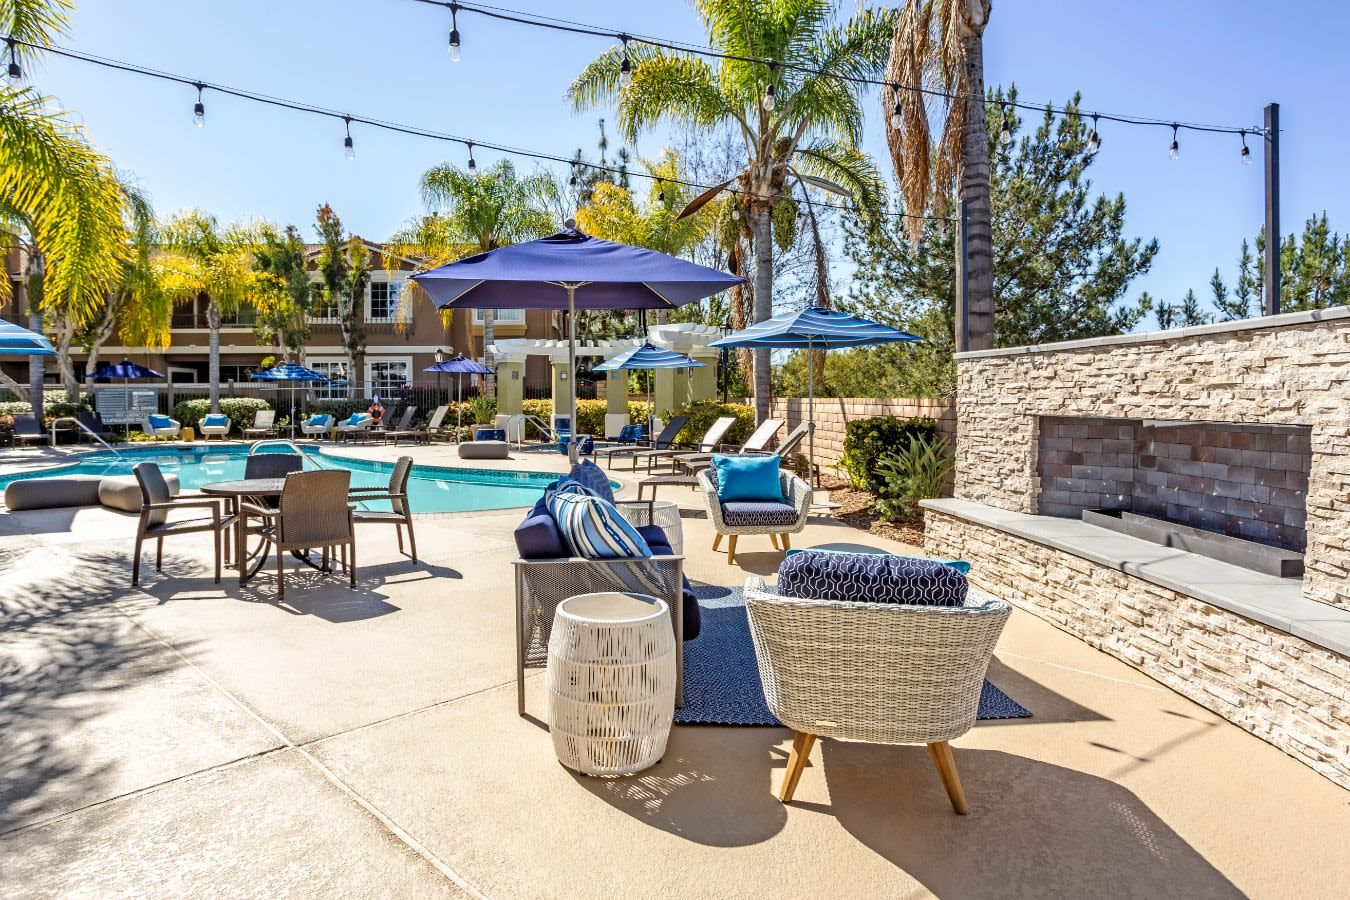 Apartments in San Diego, California, at Sofi Highlands